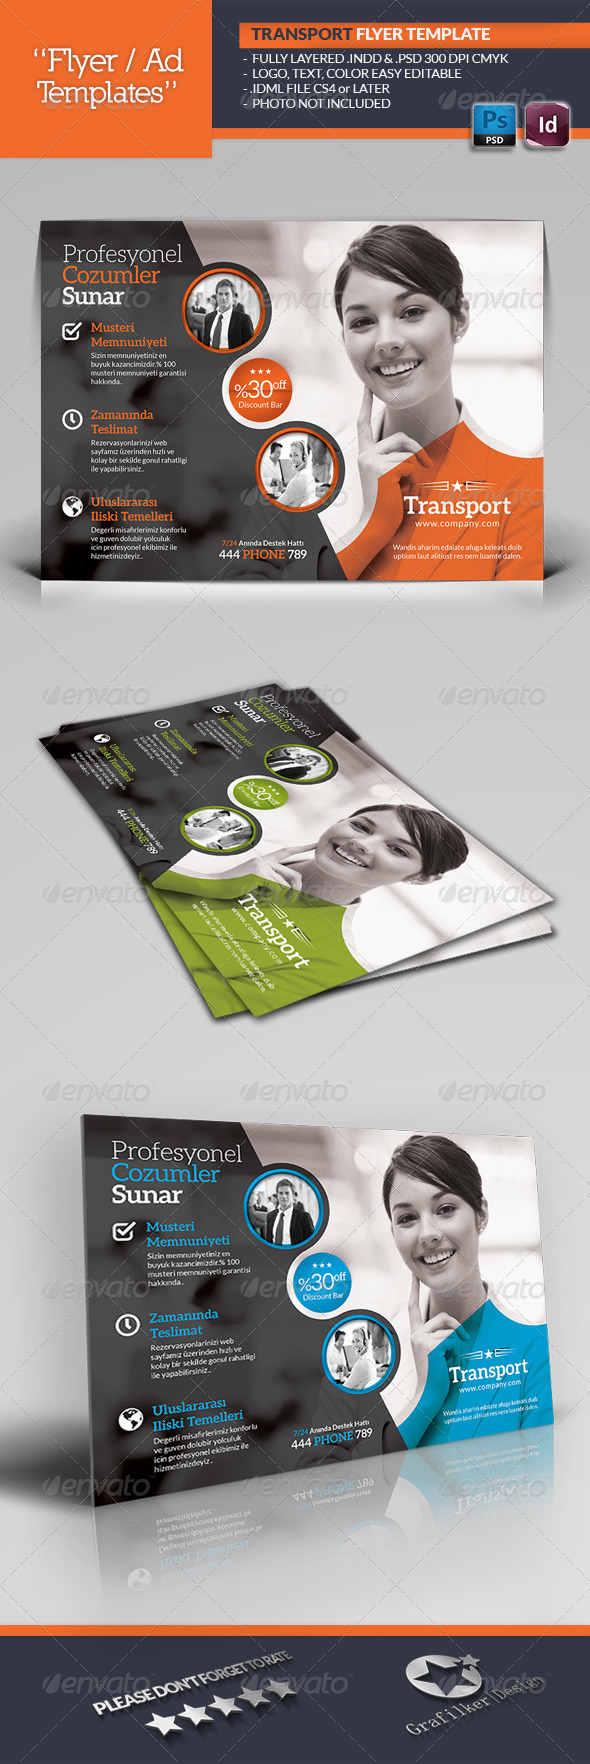 Transport Flyer Template - Corporate Flyers